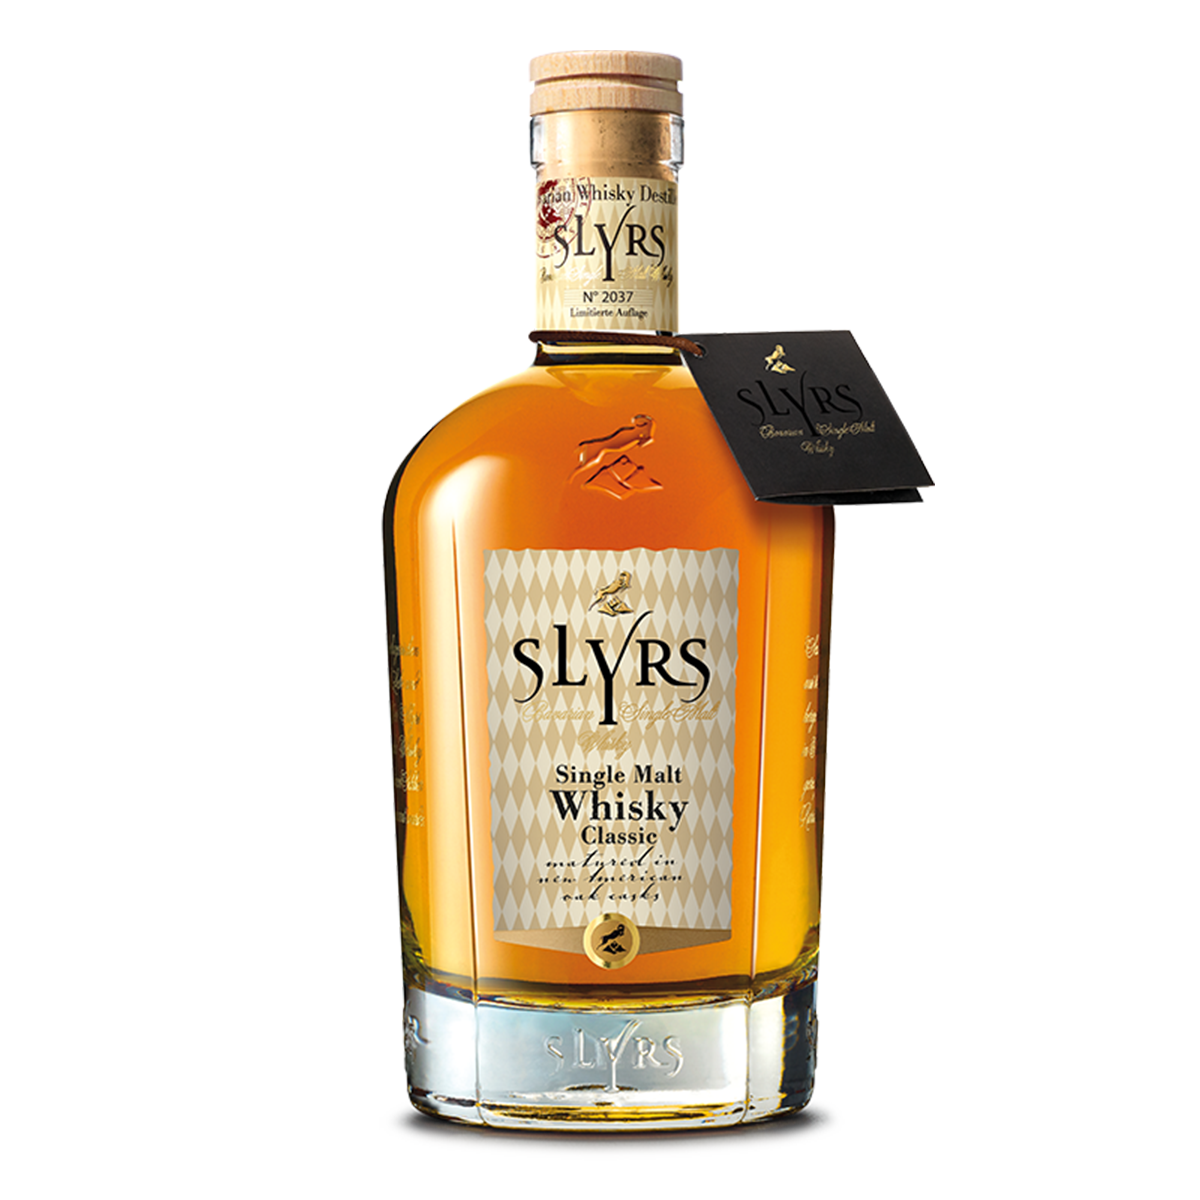 SLYRS Single Malt Whisky | Classic | 43 % vol.